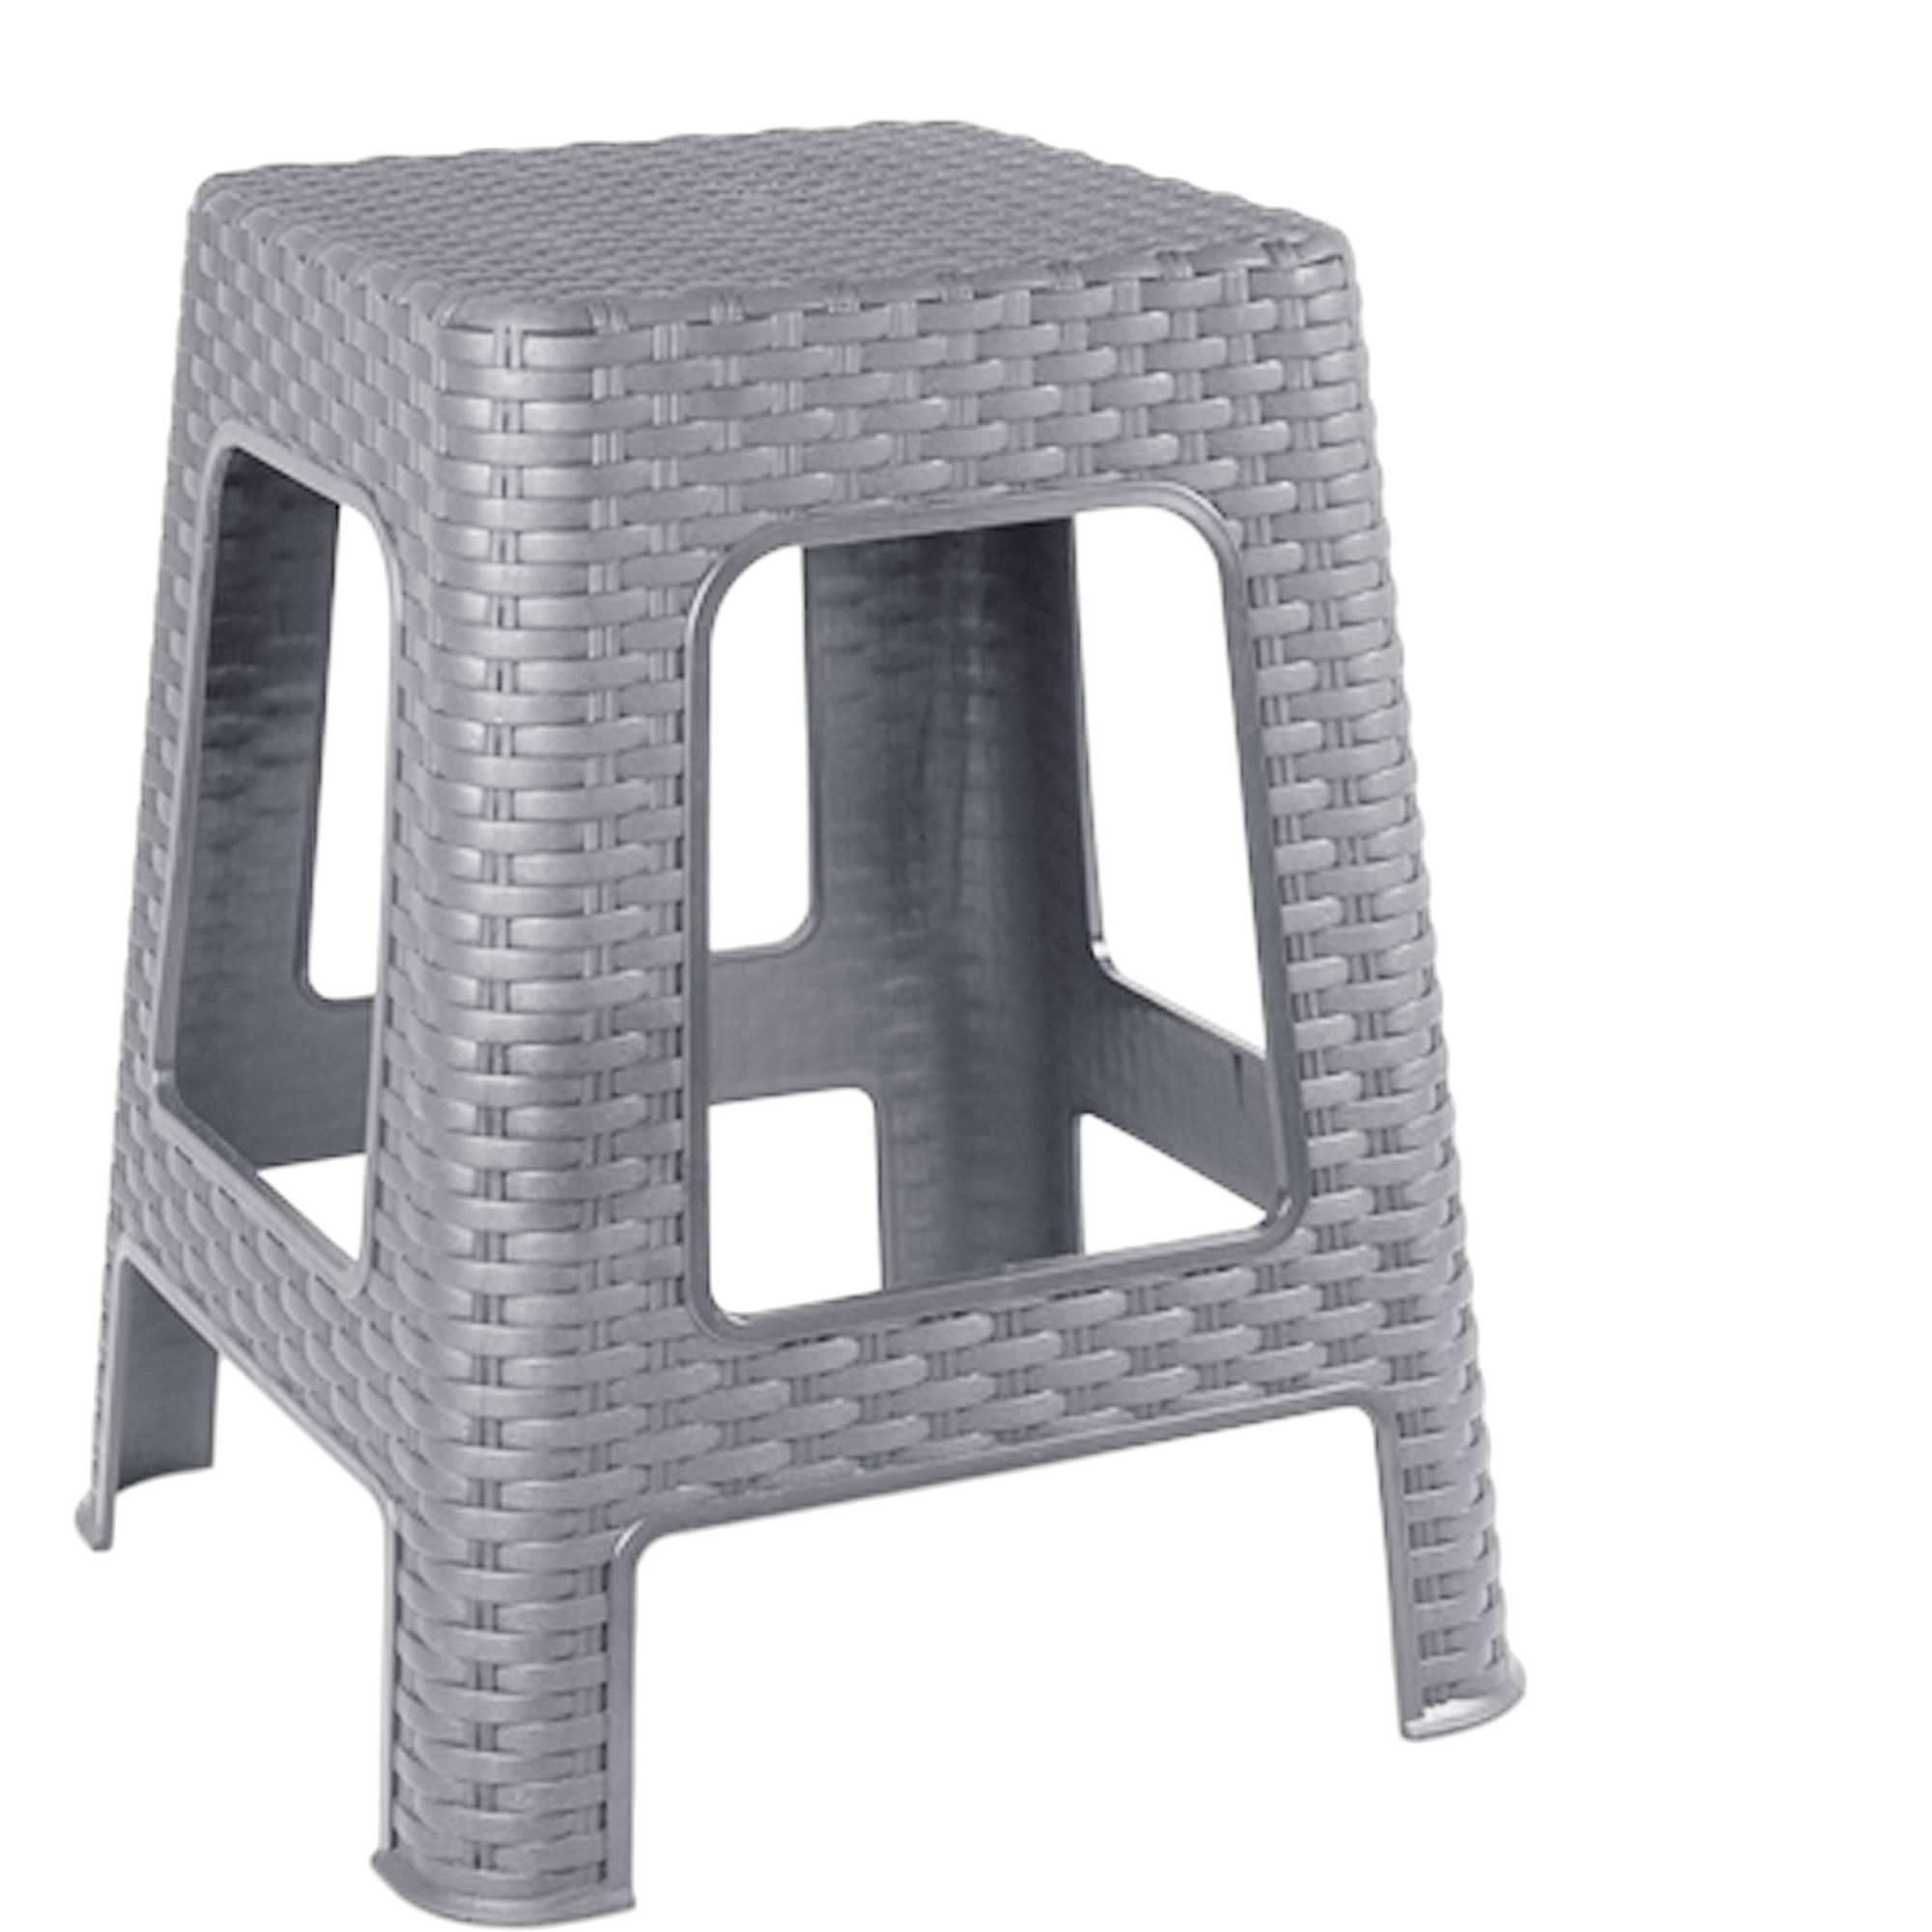 plastic rattan style step stool indoor outdoor home kitchen